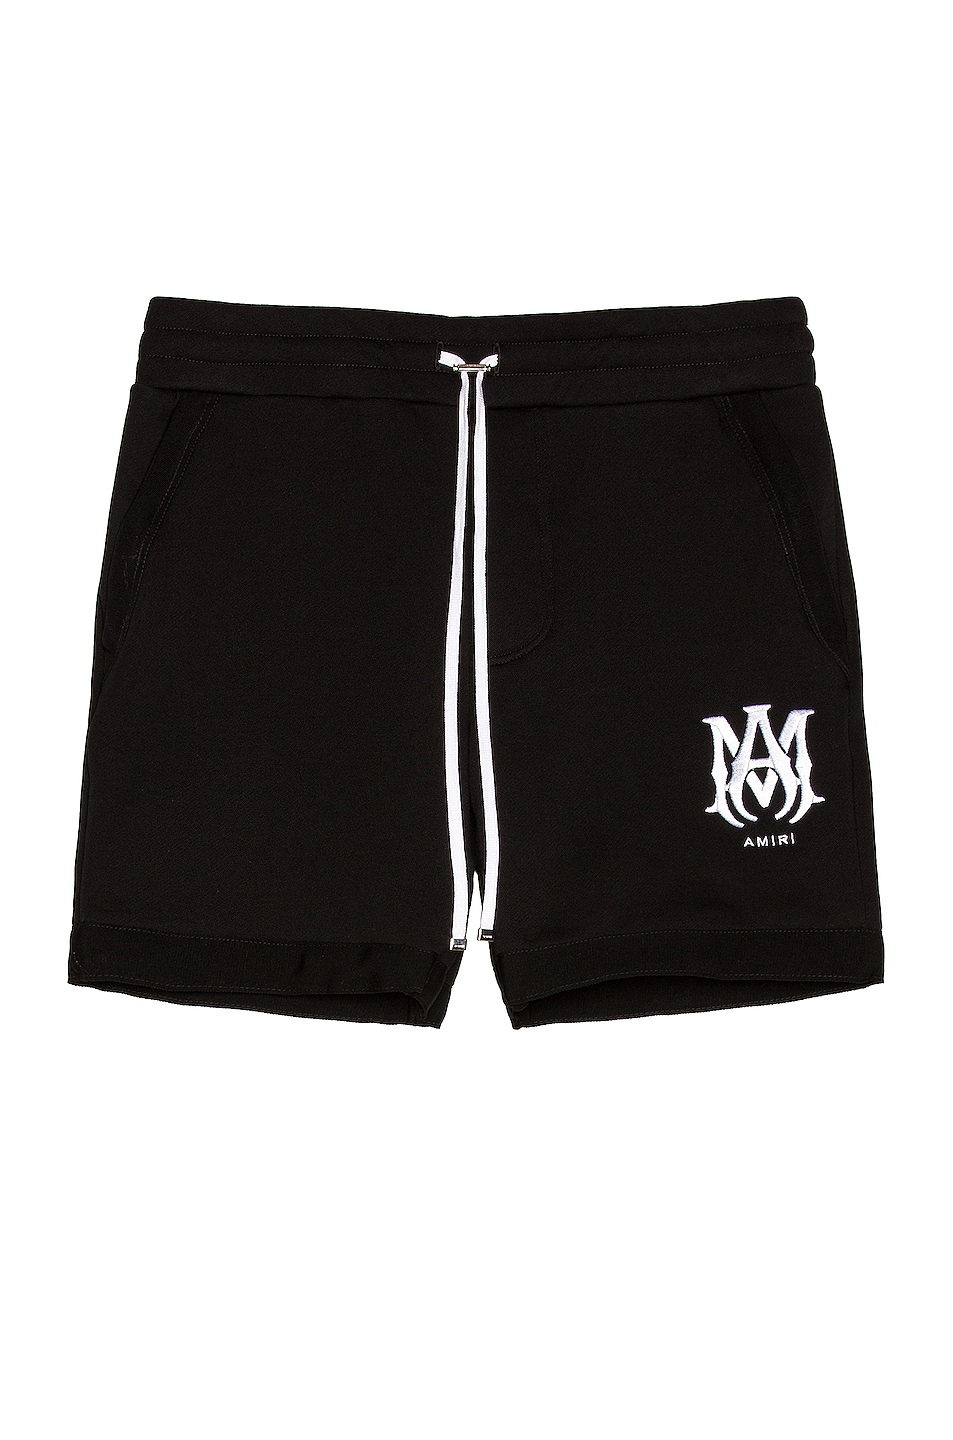 Image 1 of Amiri MA Sweatshort in Black